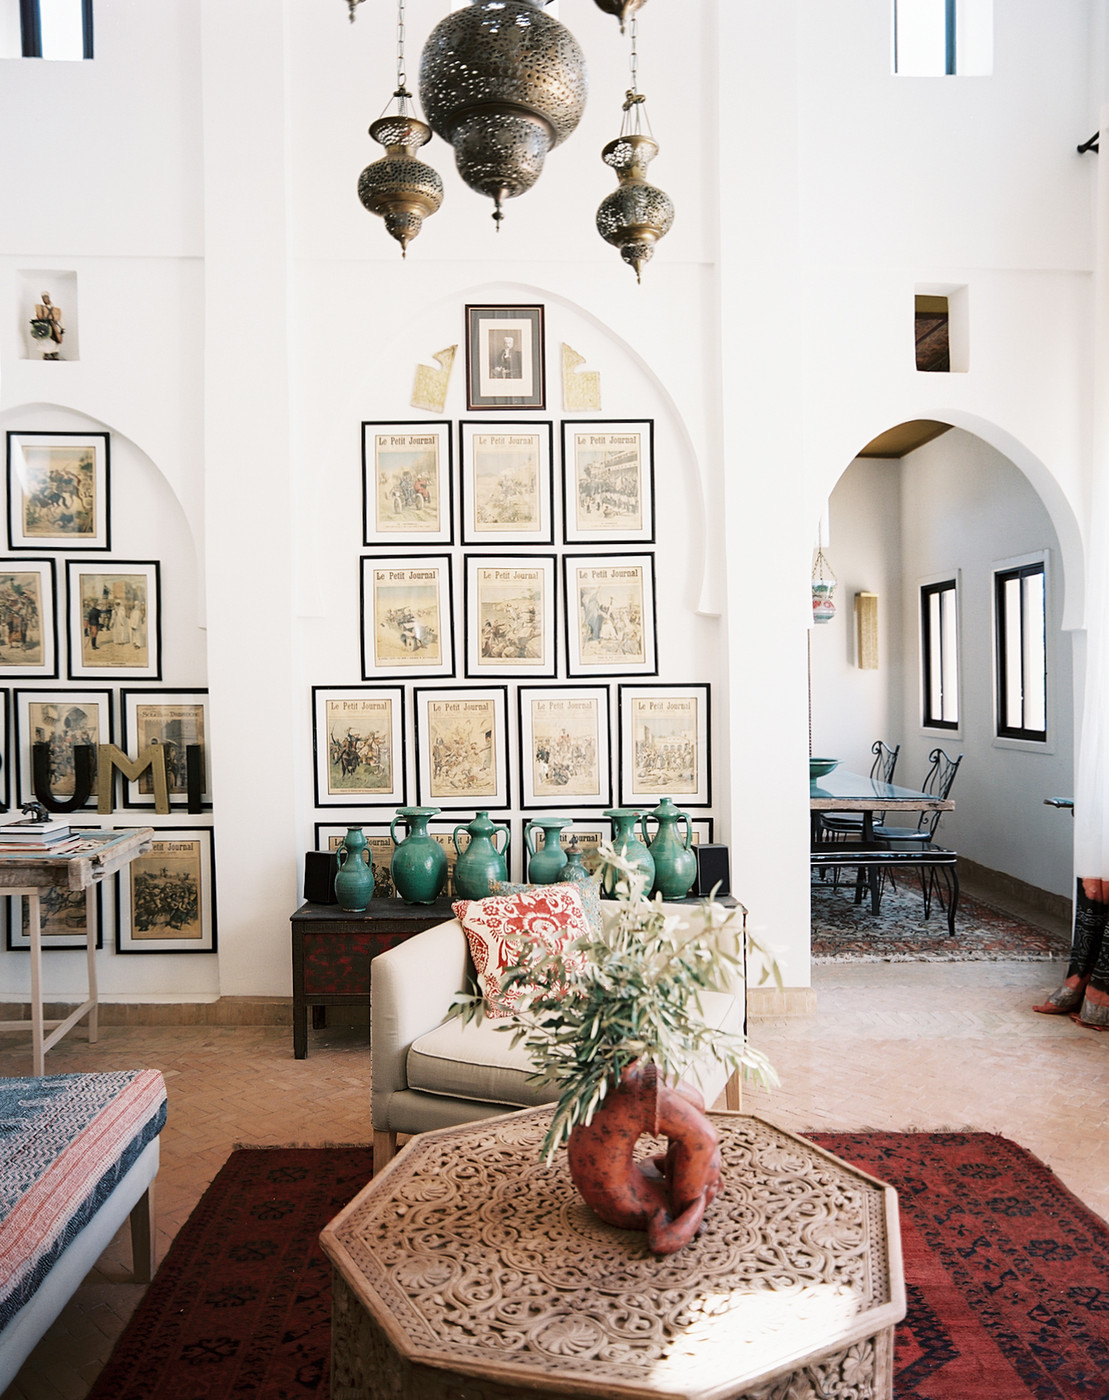 Moroccan coffee table photos design ideas remodel and decor lonny - Remarkable moroccan living room style ...